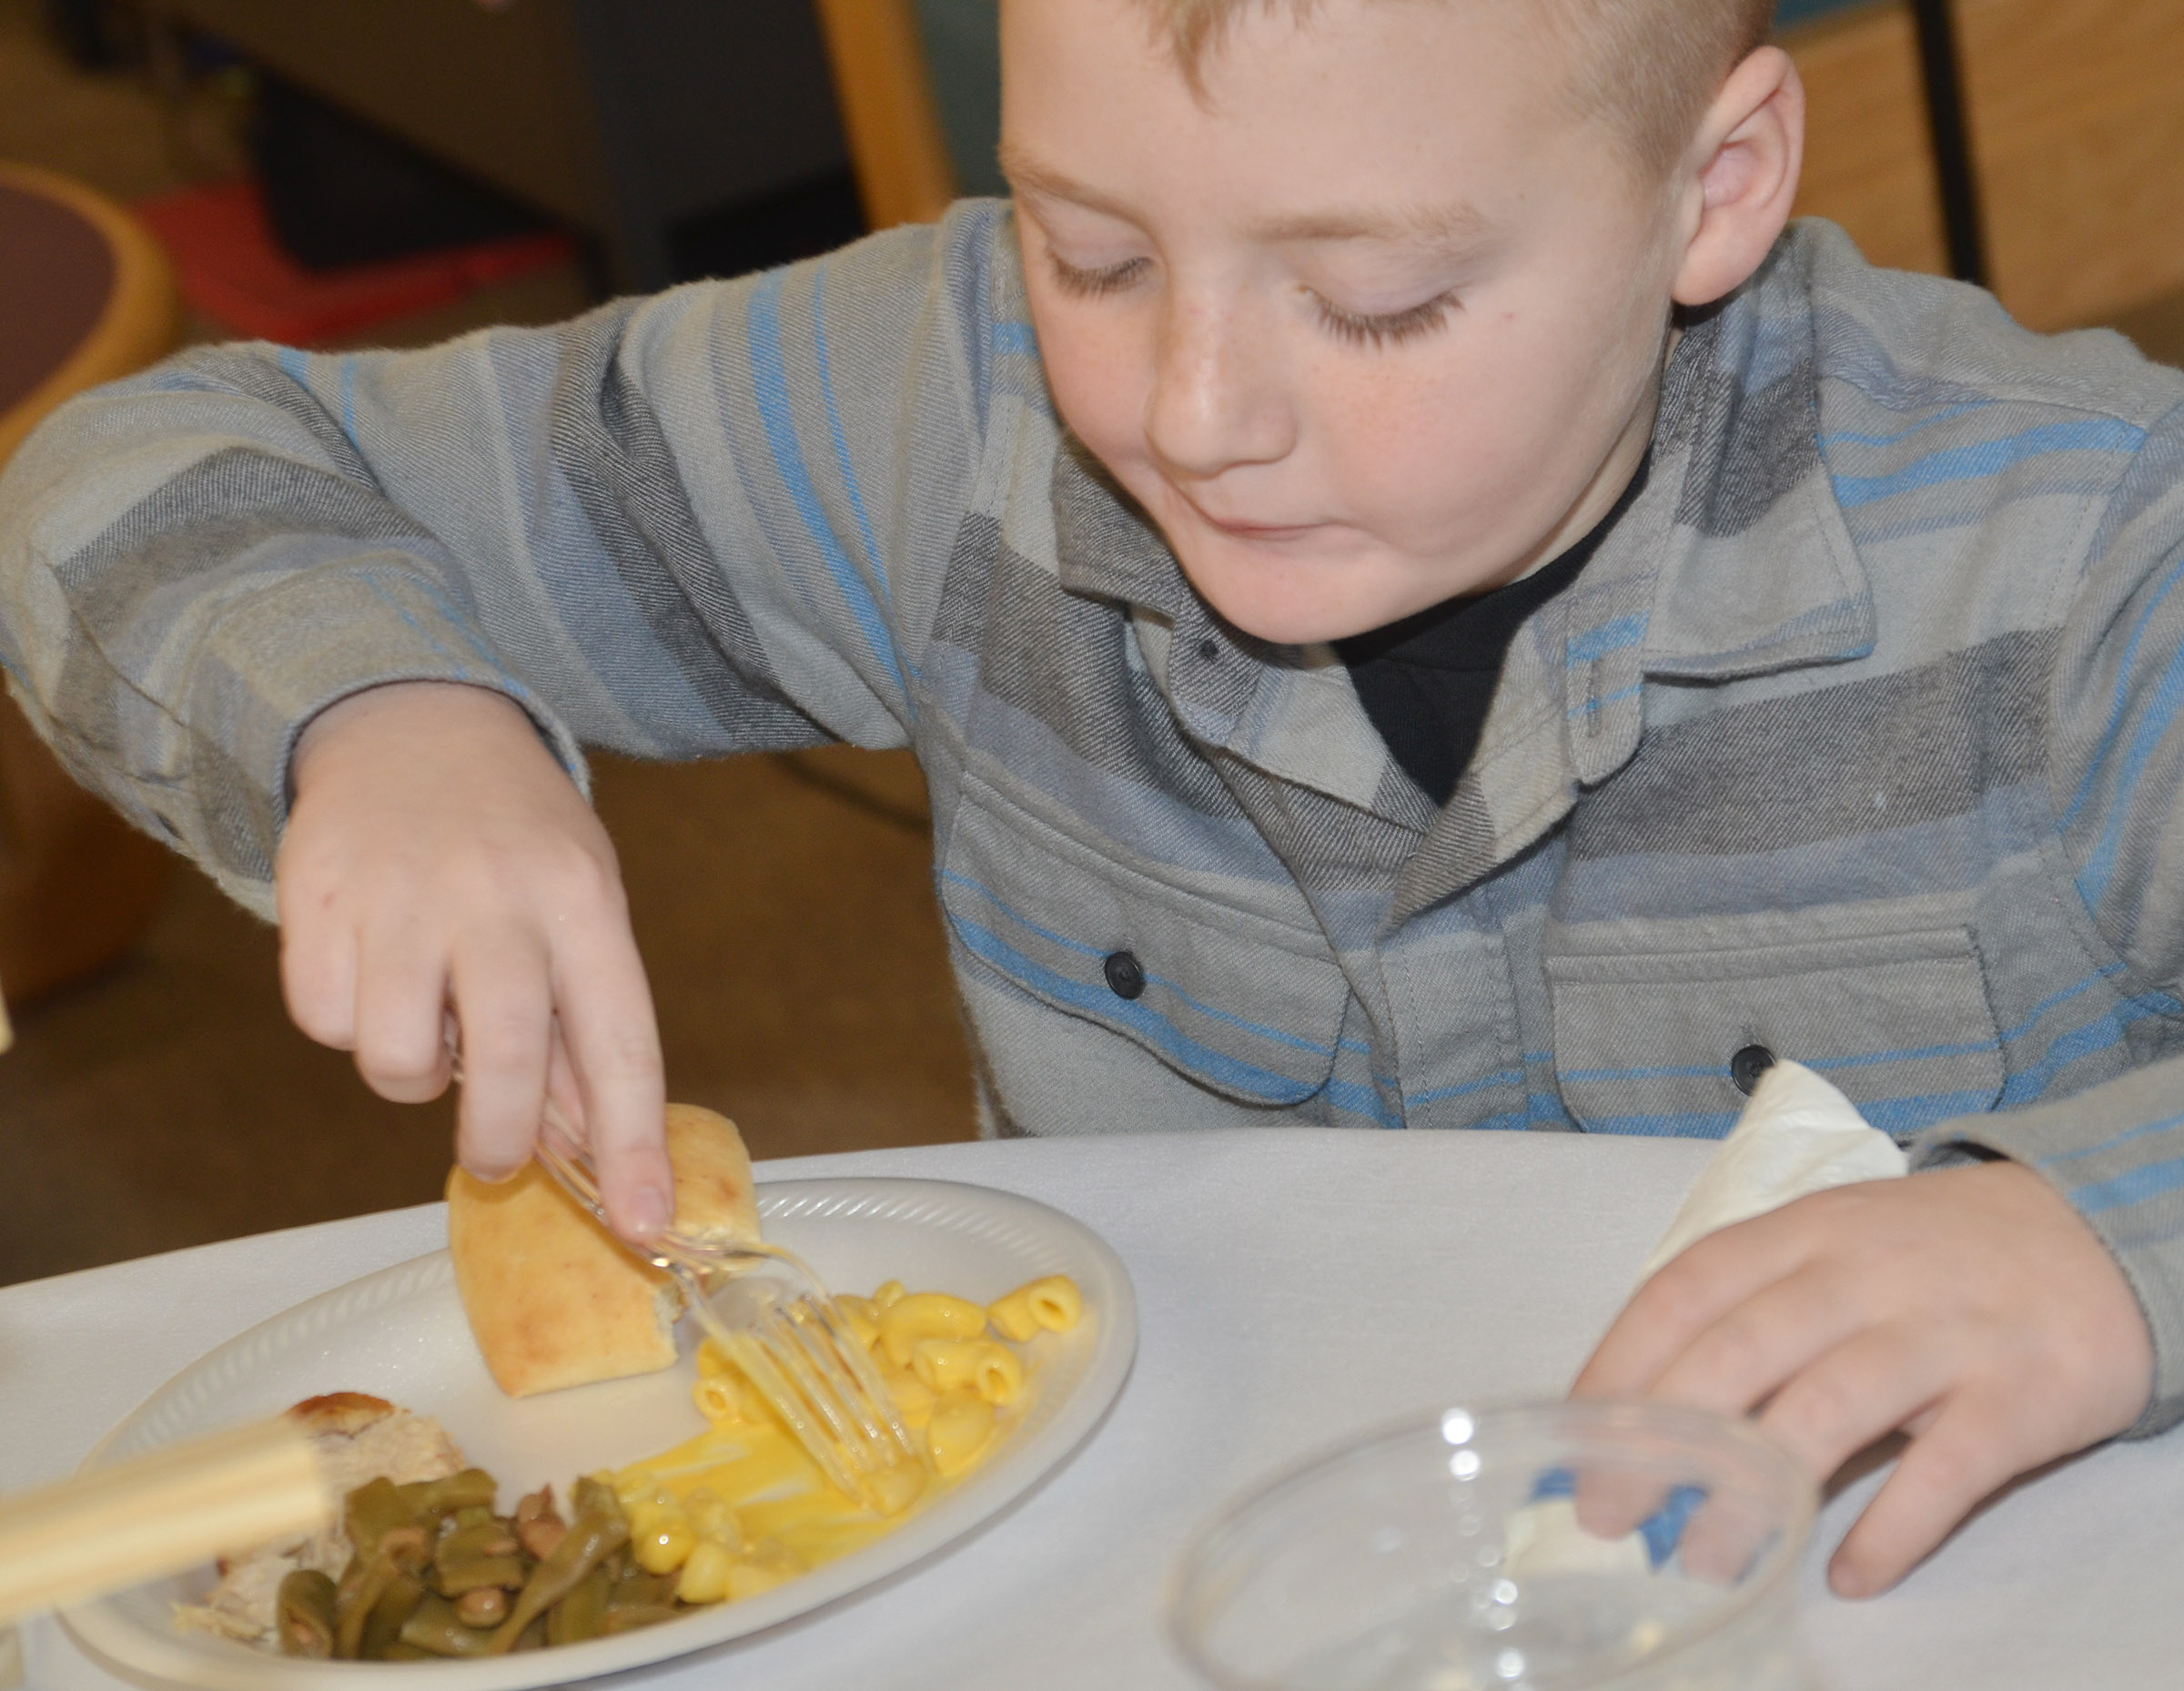 CES third-grader Ryder Murphy eats his macaroni and cheese.